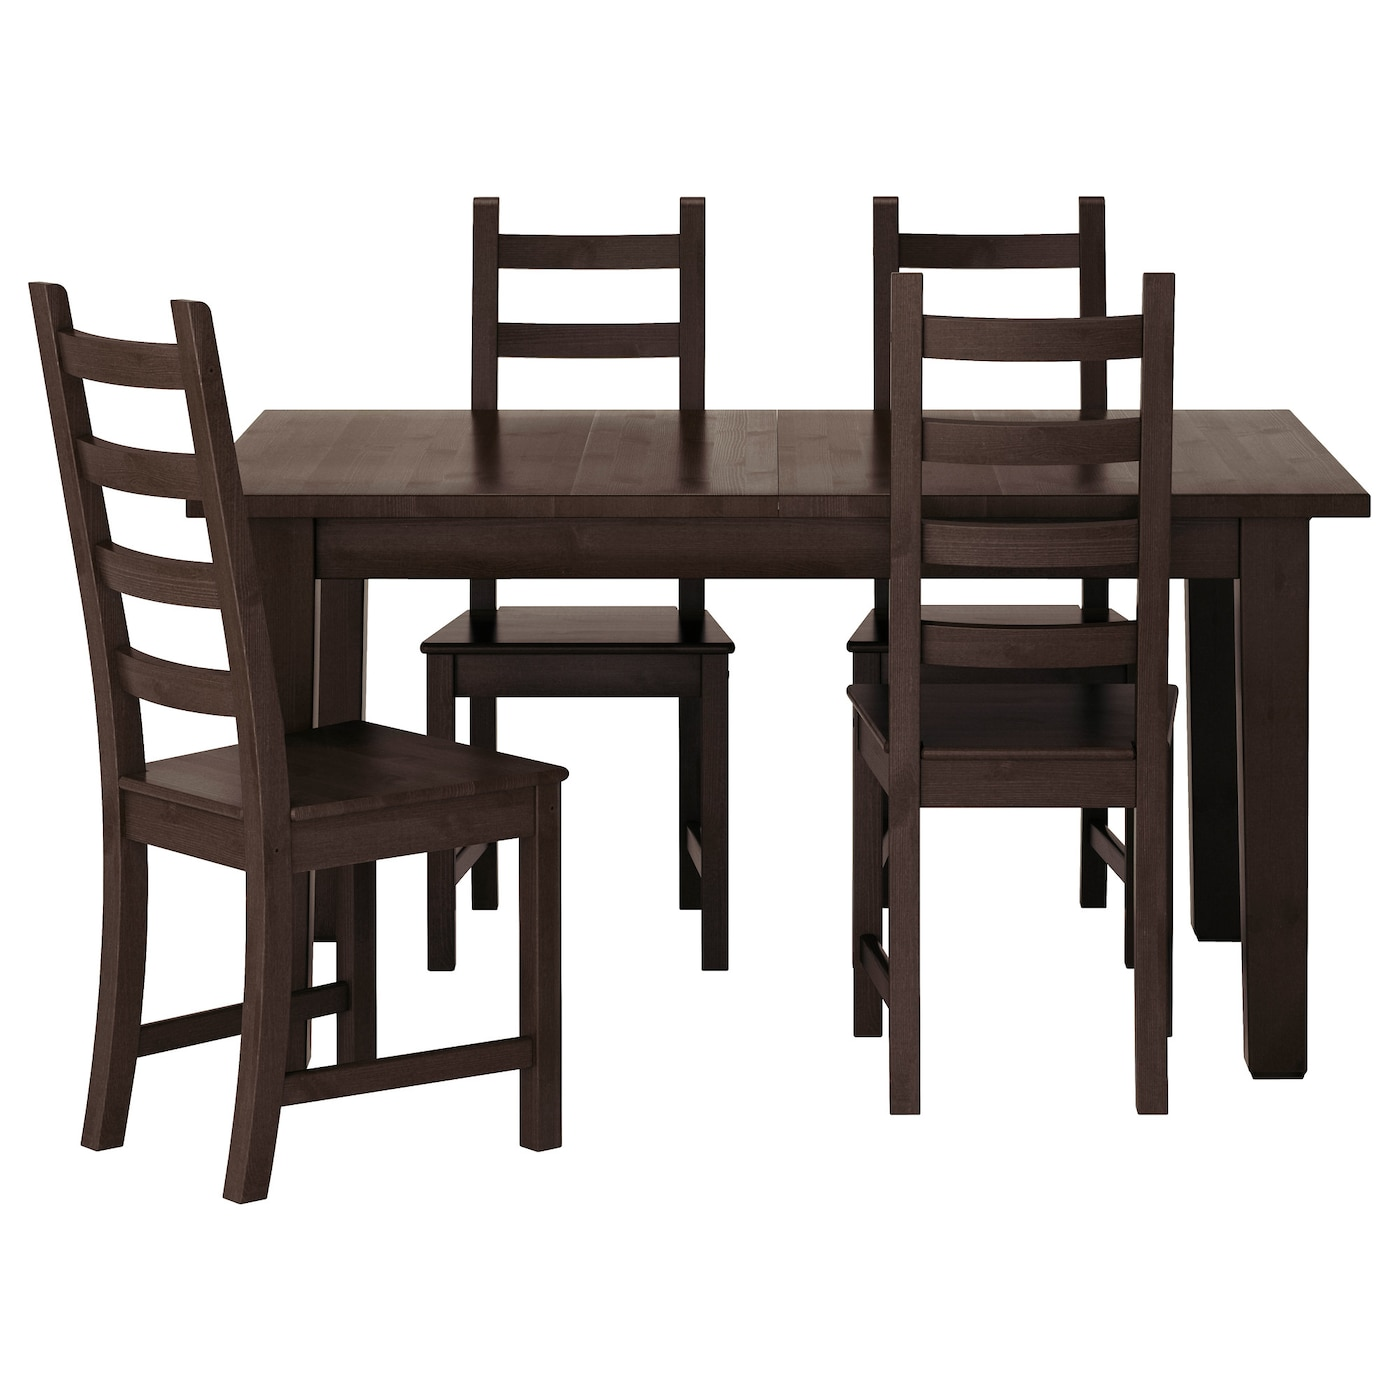 "KAUSTBY STORN""S Table and 4 chairs Brown black 147 cm IKEA"